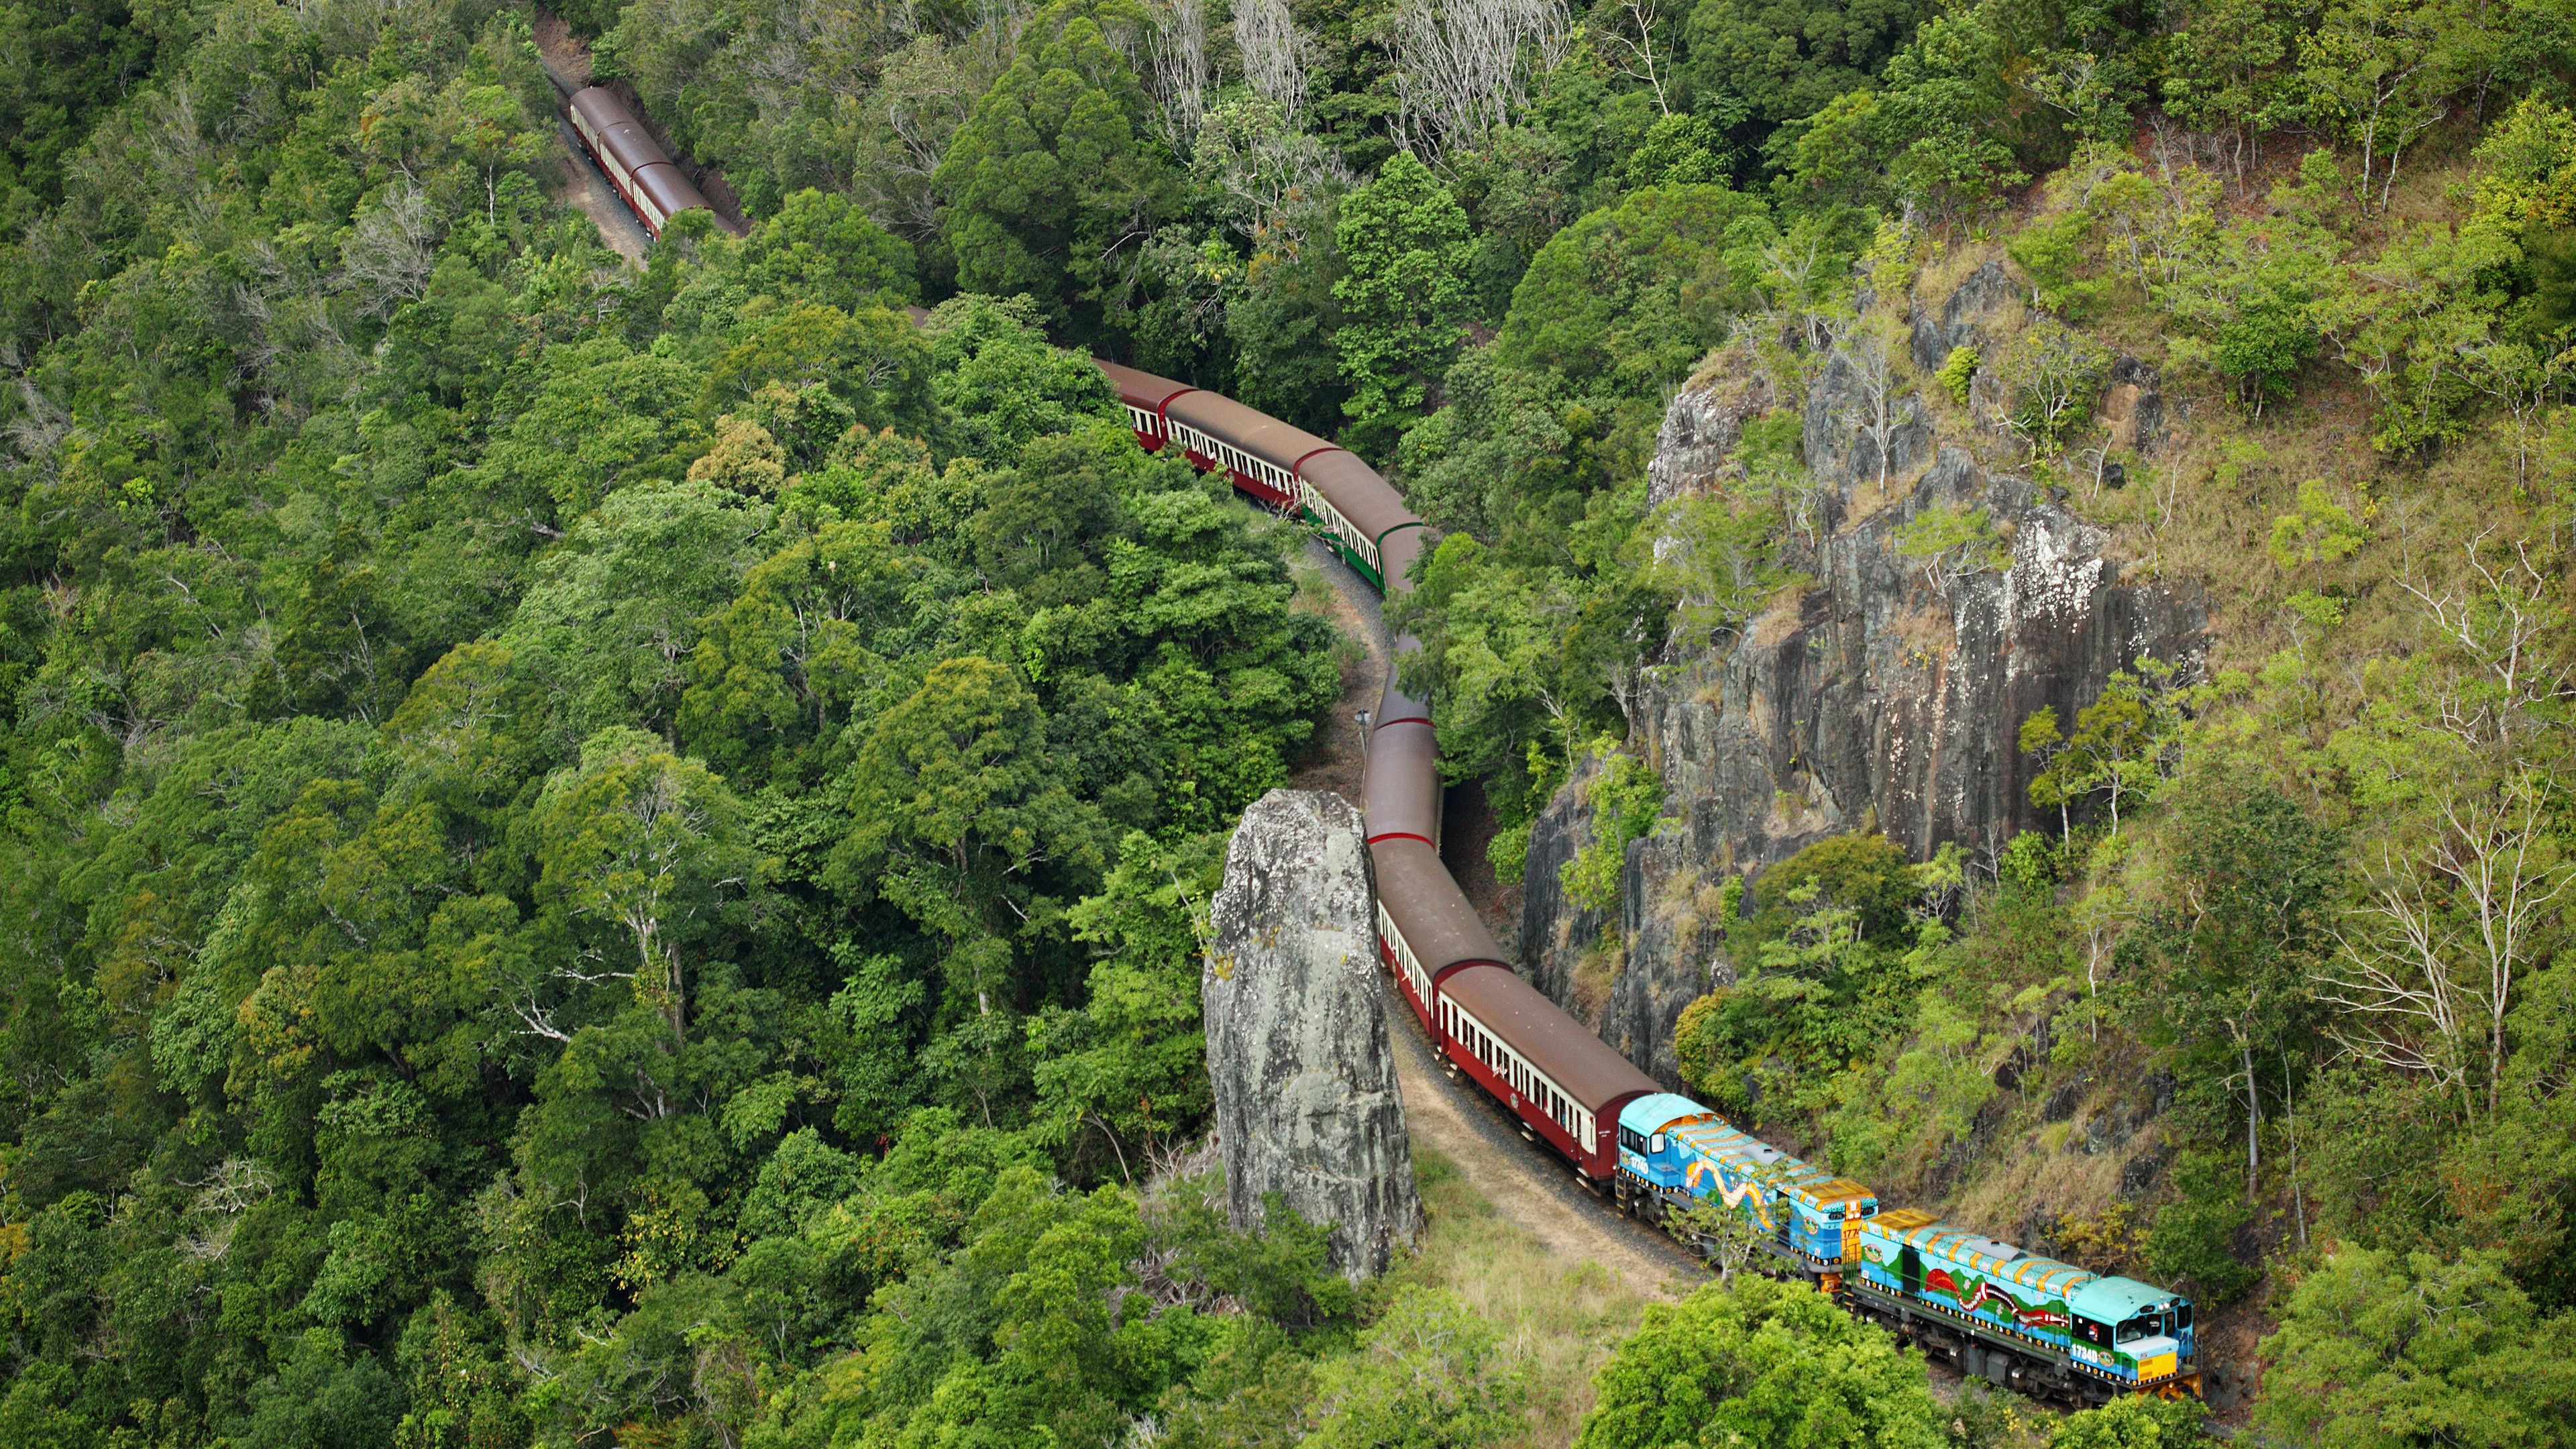 Aerial view of the Kuranda Scenic Railway in Kuranda